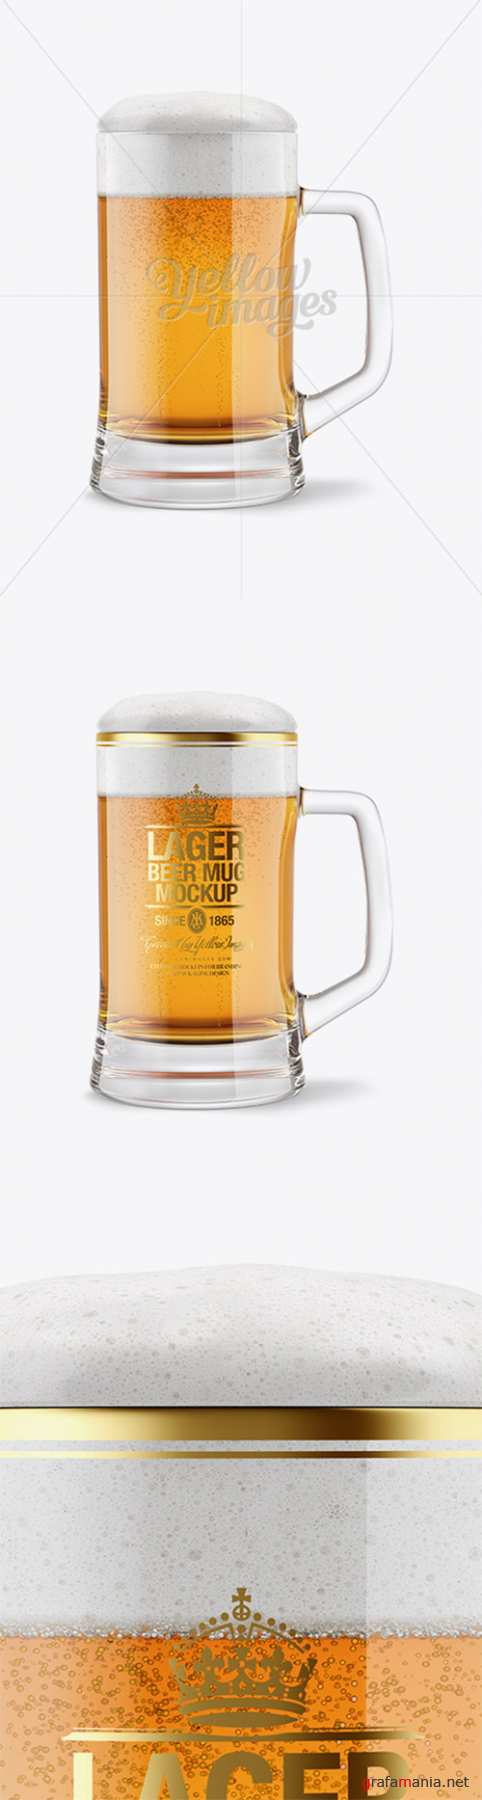 Tankard Glass Mug with Lager Beer Mockup 14664